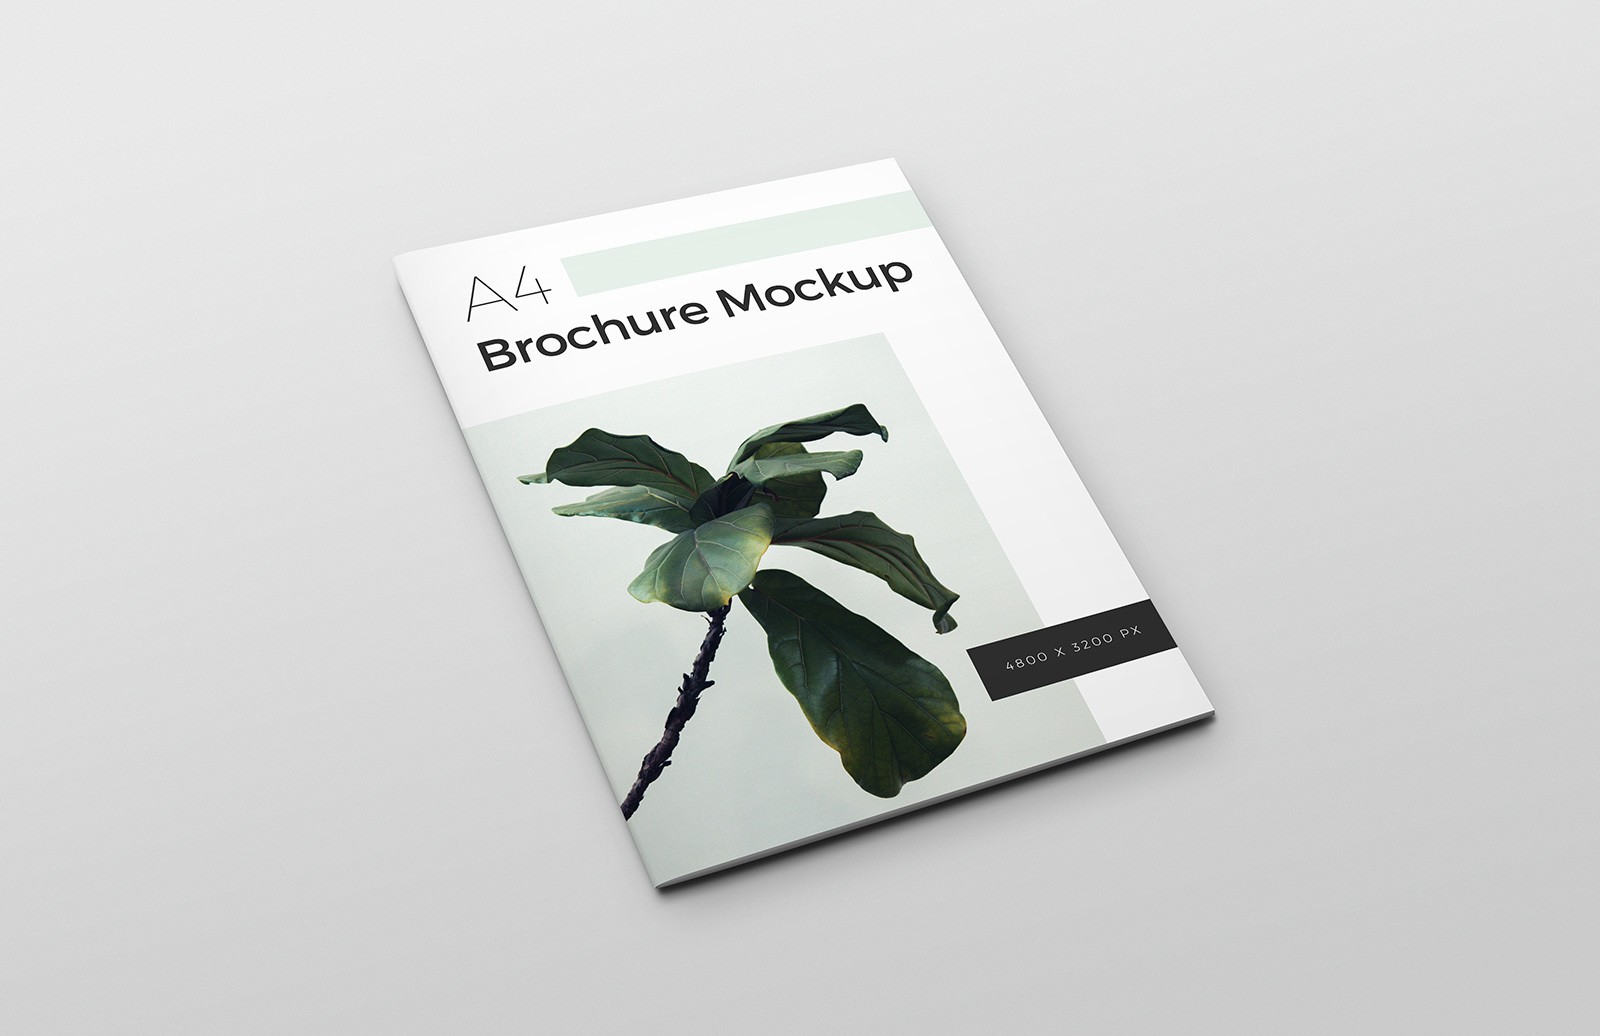 Free A4 Brochure Mockup for Photoshop